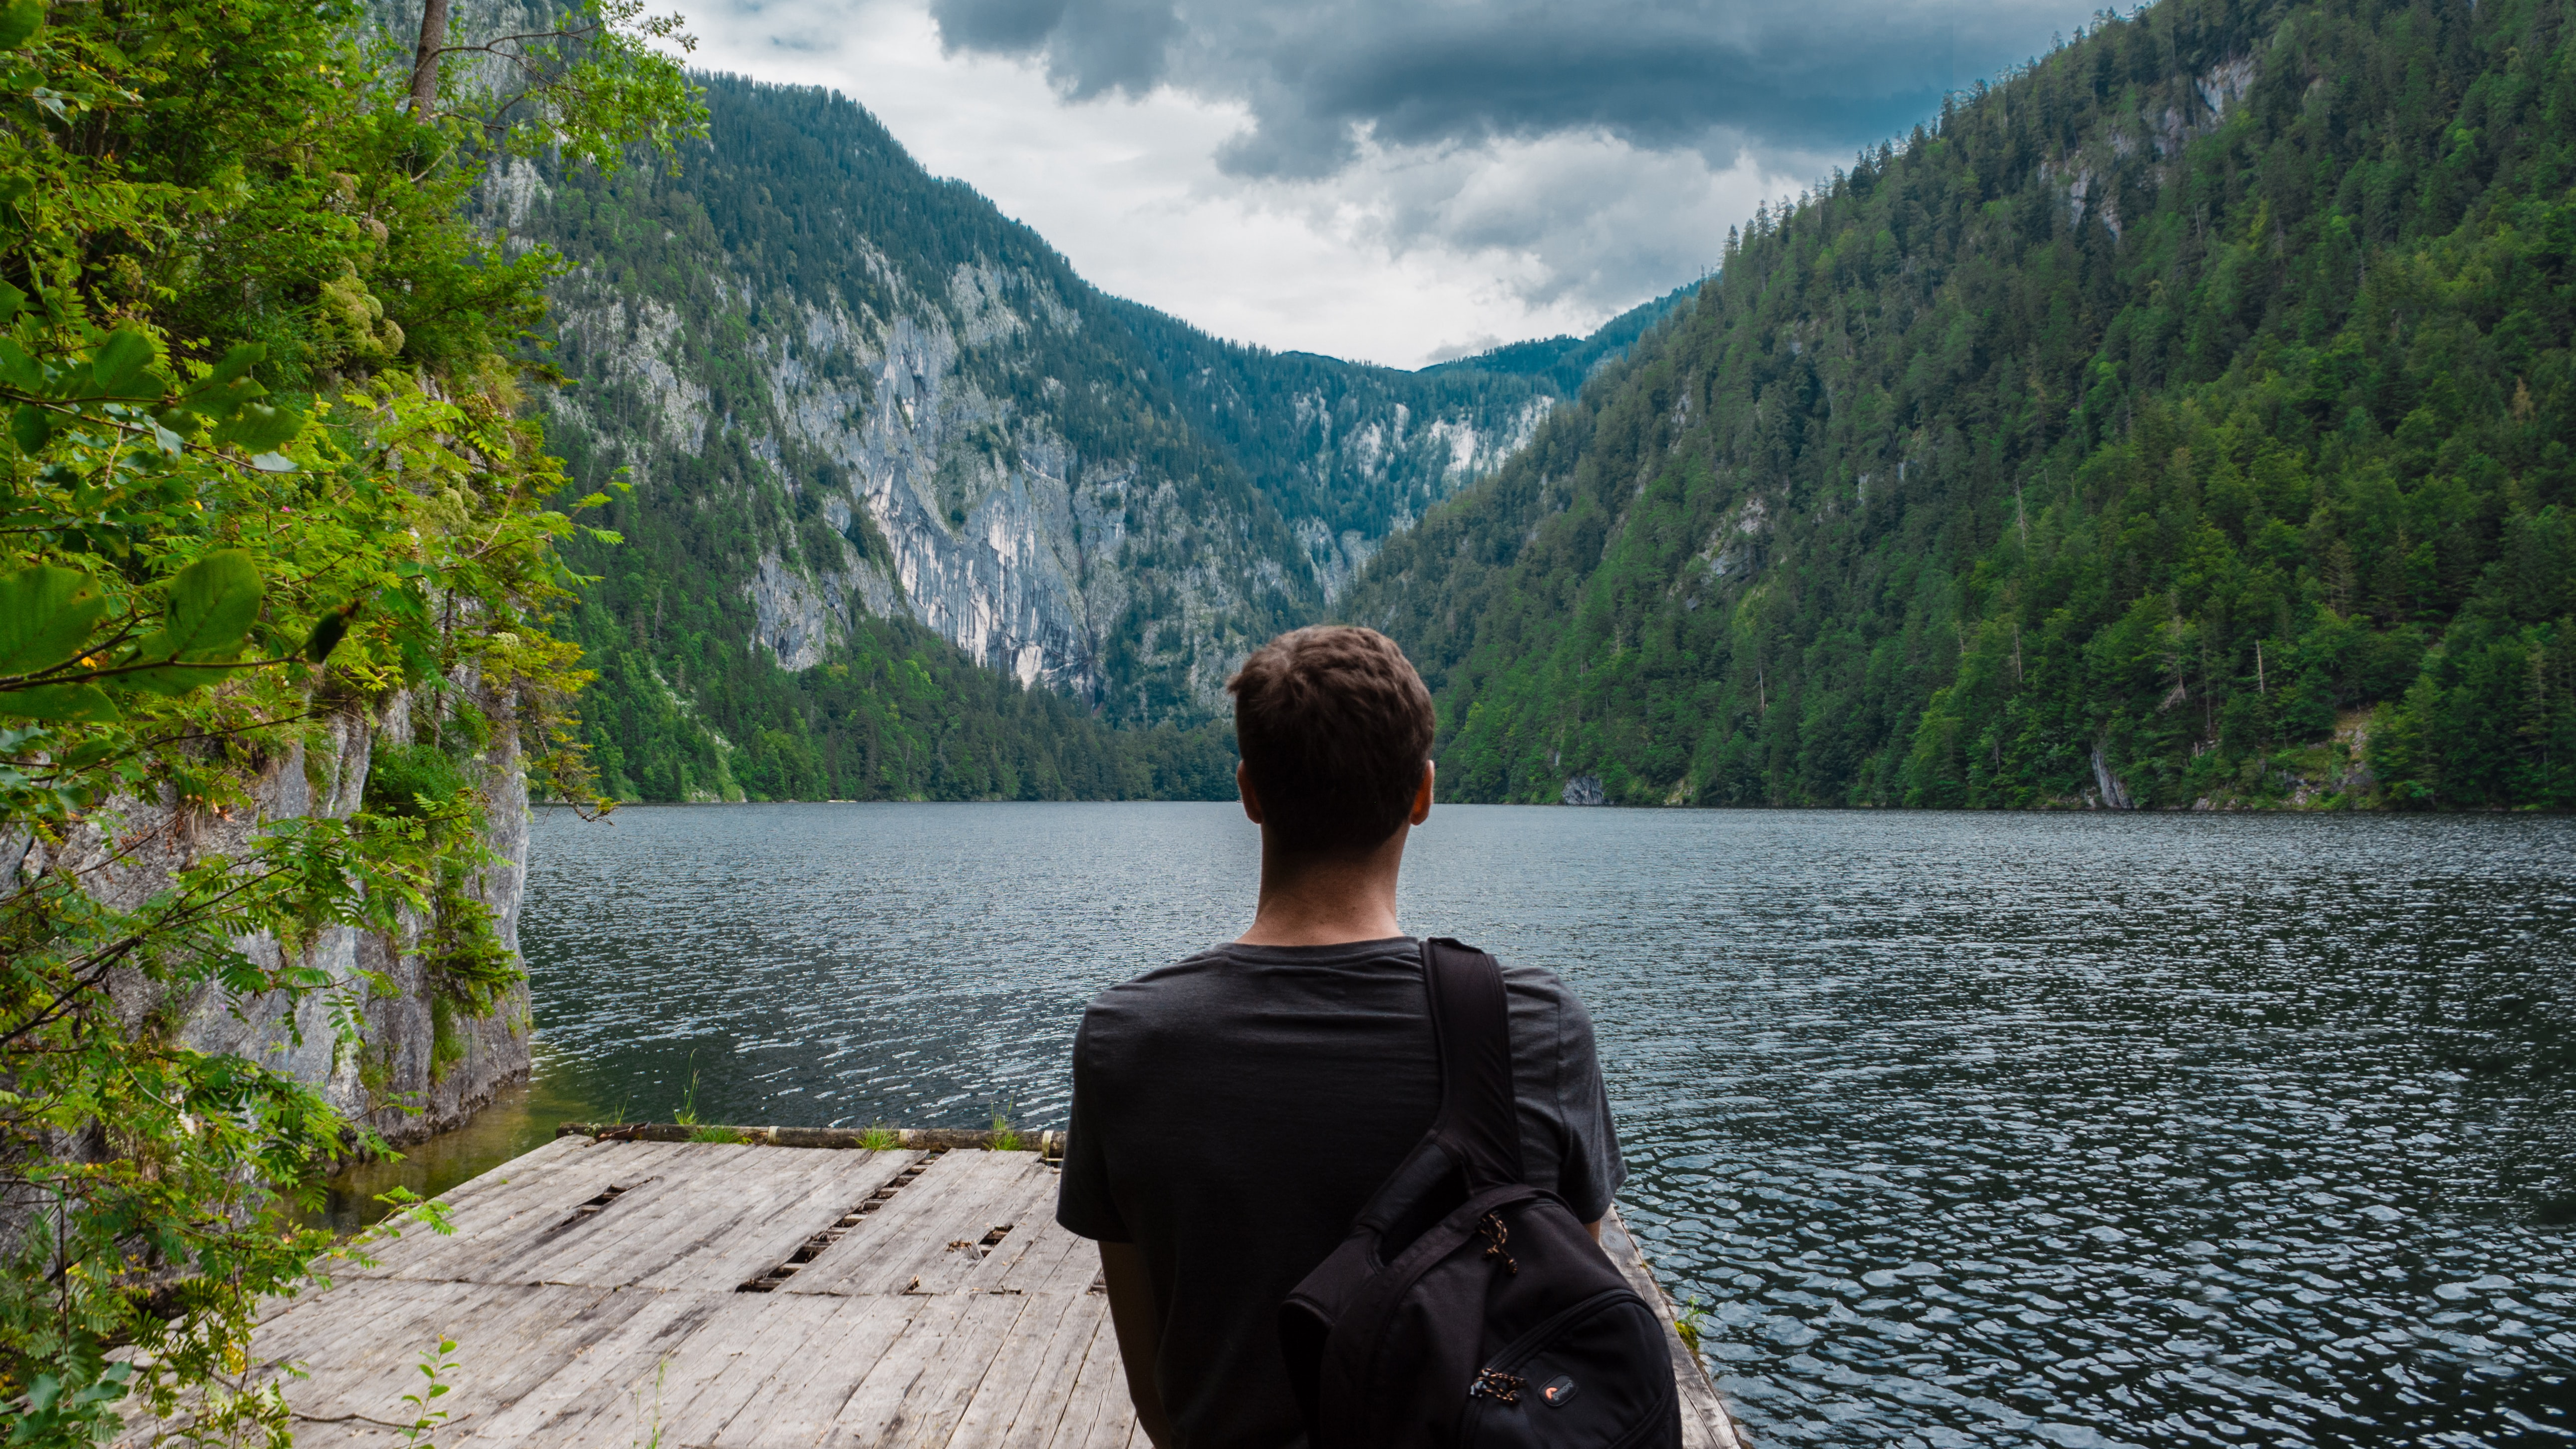 man standing on brown wooden board near body of water surrounded by mountains